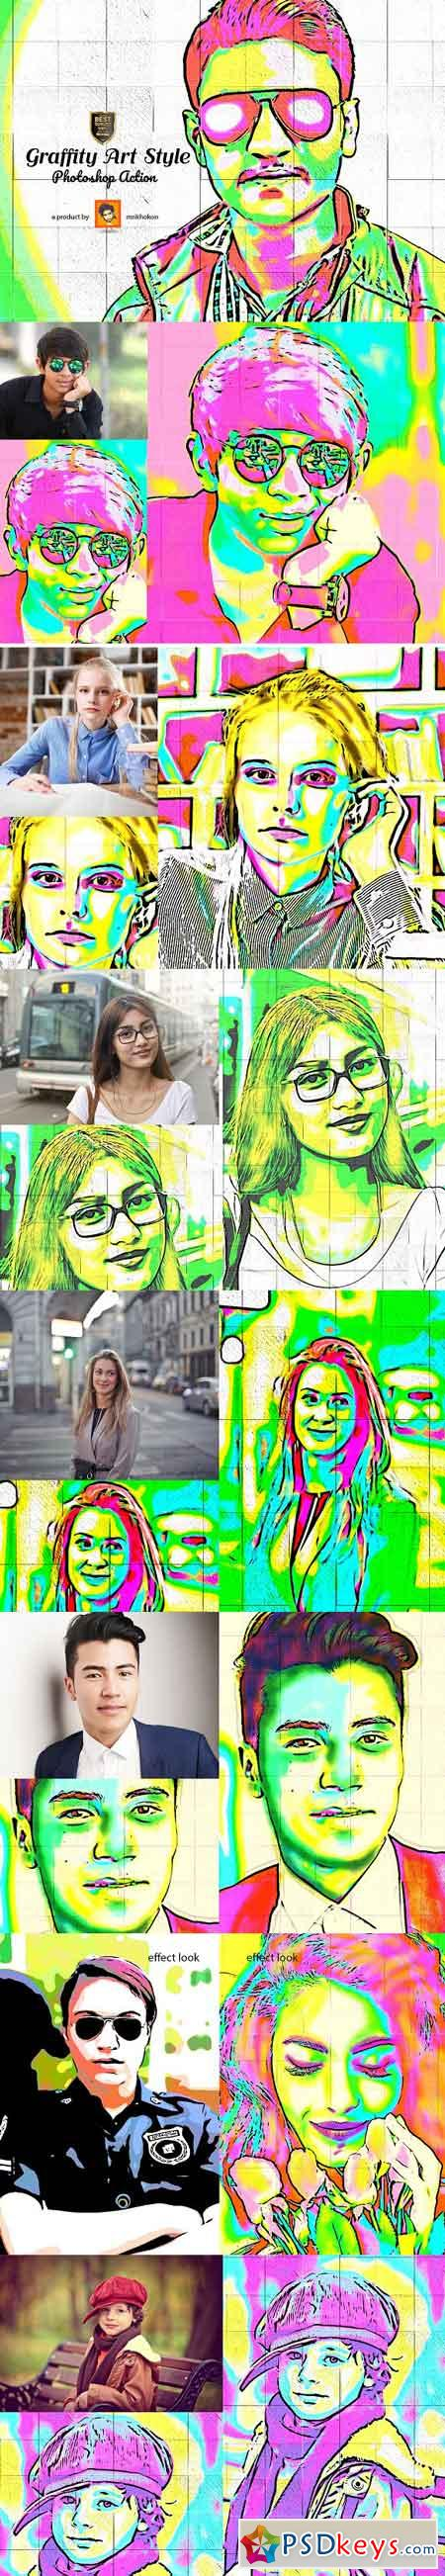 Graffity Art Style Photoshop Action 3072169